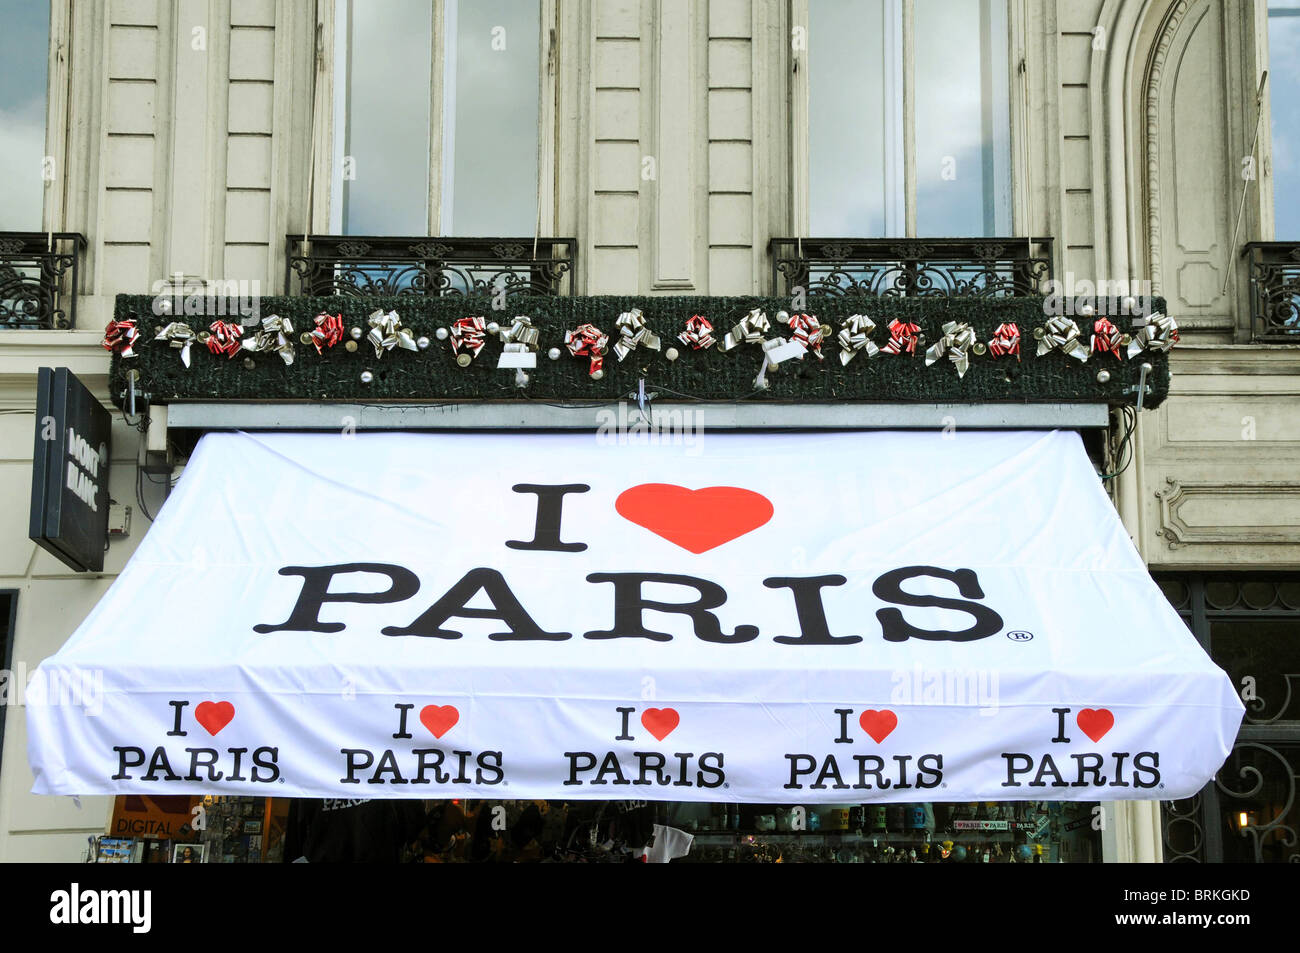 Shop window blind awning sunblind showing the legend I Love Paris with heart shape in red. - Stock Image